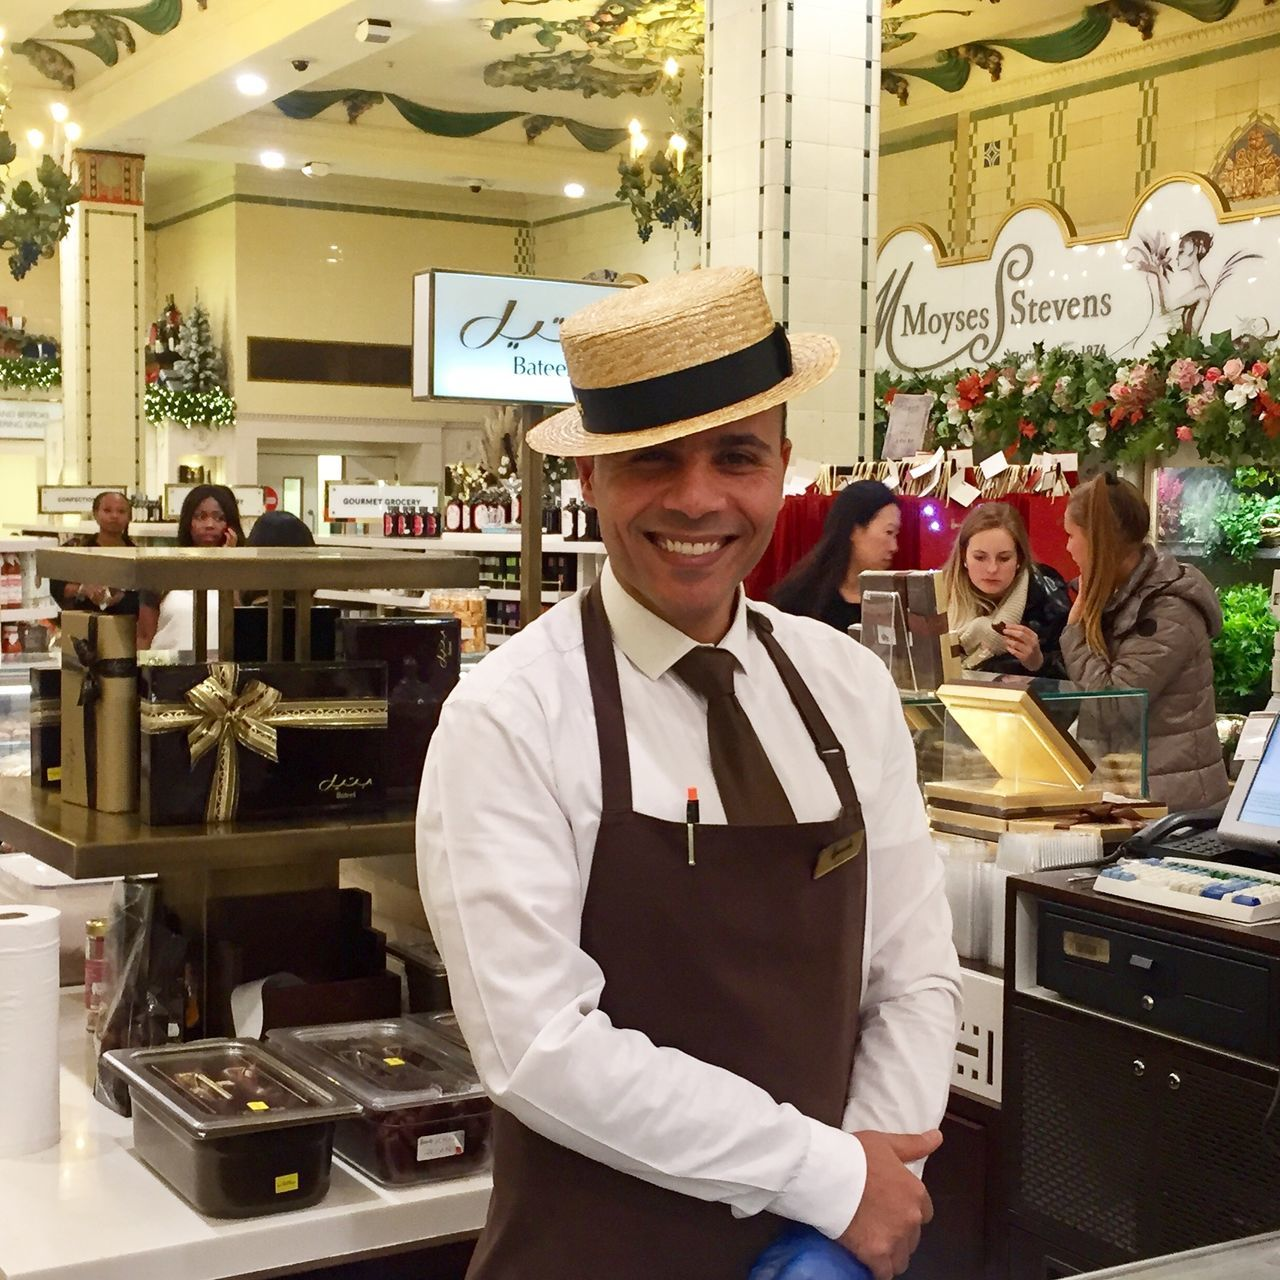 Adult Bar Counter Bartender Business Cheerful Confidence  Entrepreneur Harrods Looking At Camera Men Occupation One Man Only One Person Only Men Owner People Pride Service Occupation Small Business Smiling Standing Store Waist Up Working